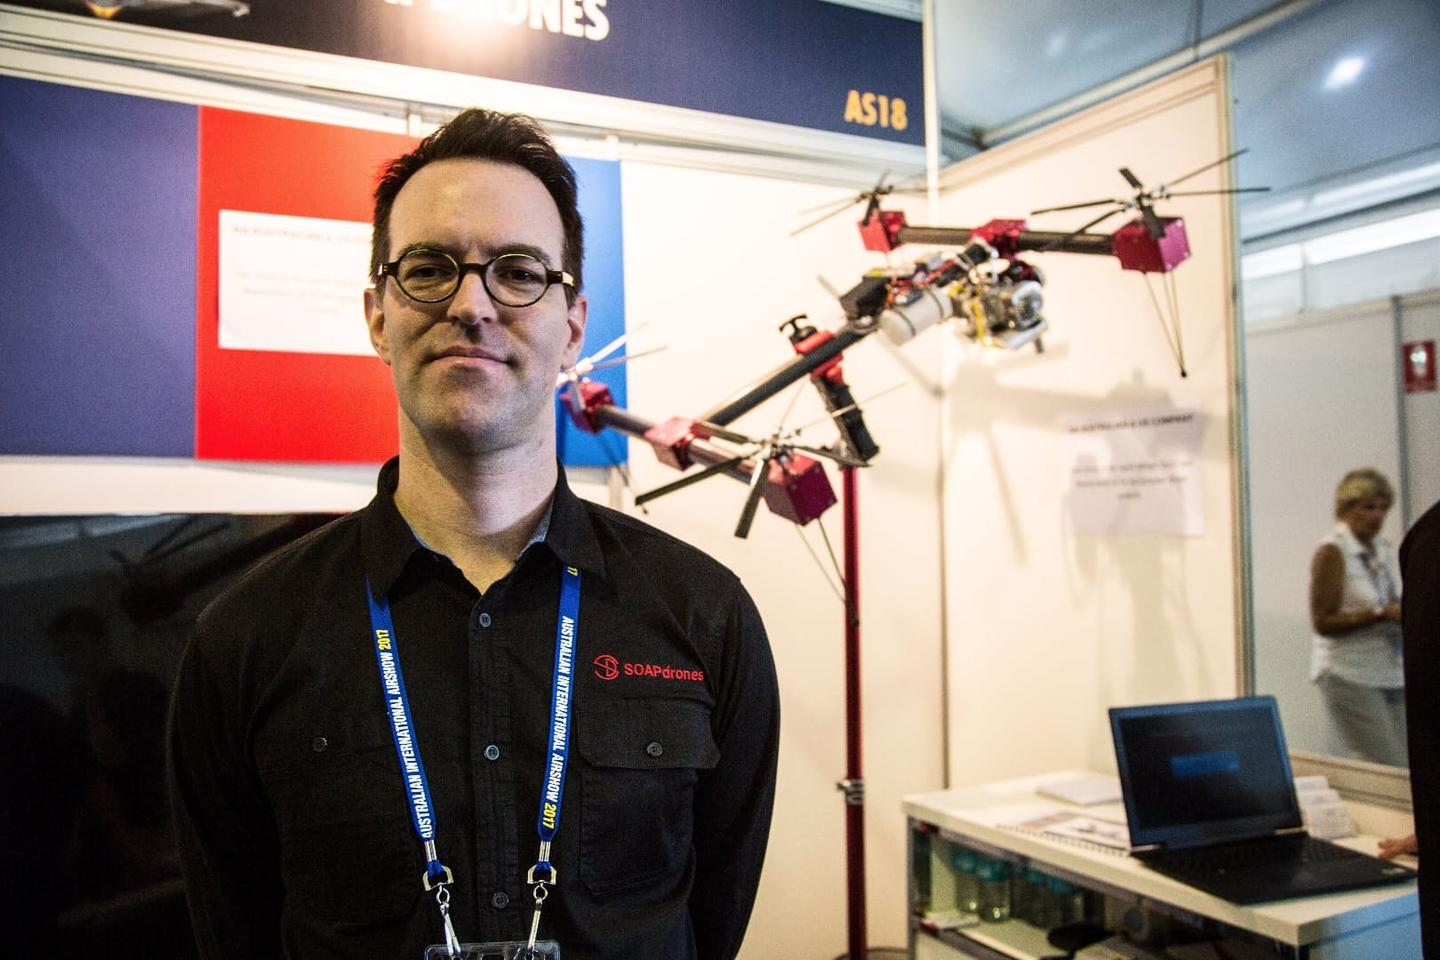 SOAPdrones Technical Director Paul Riess